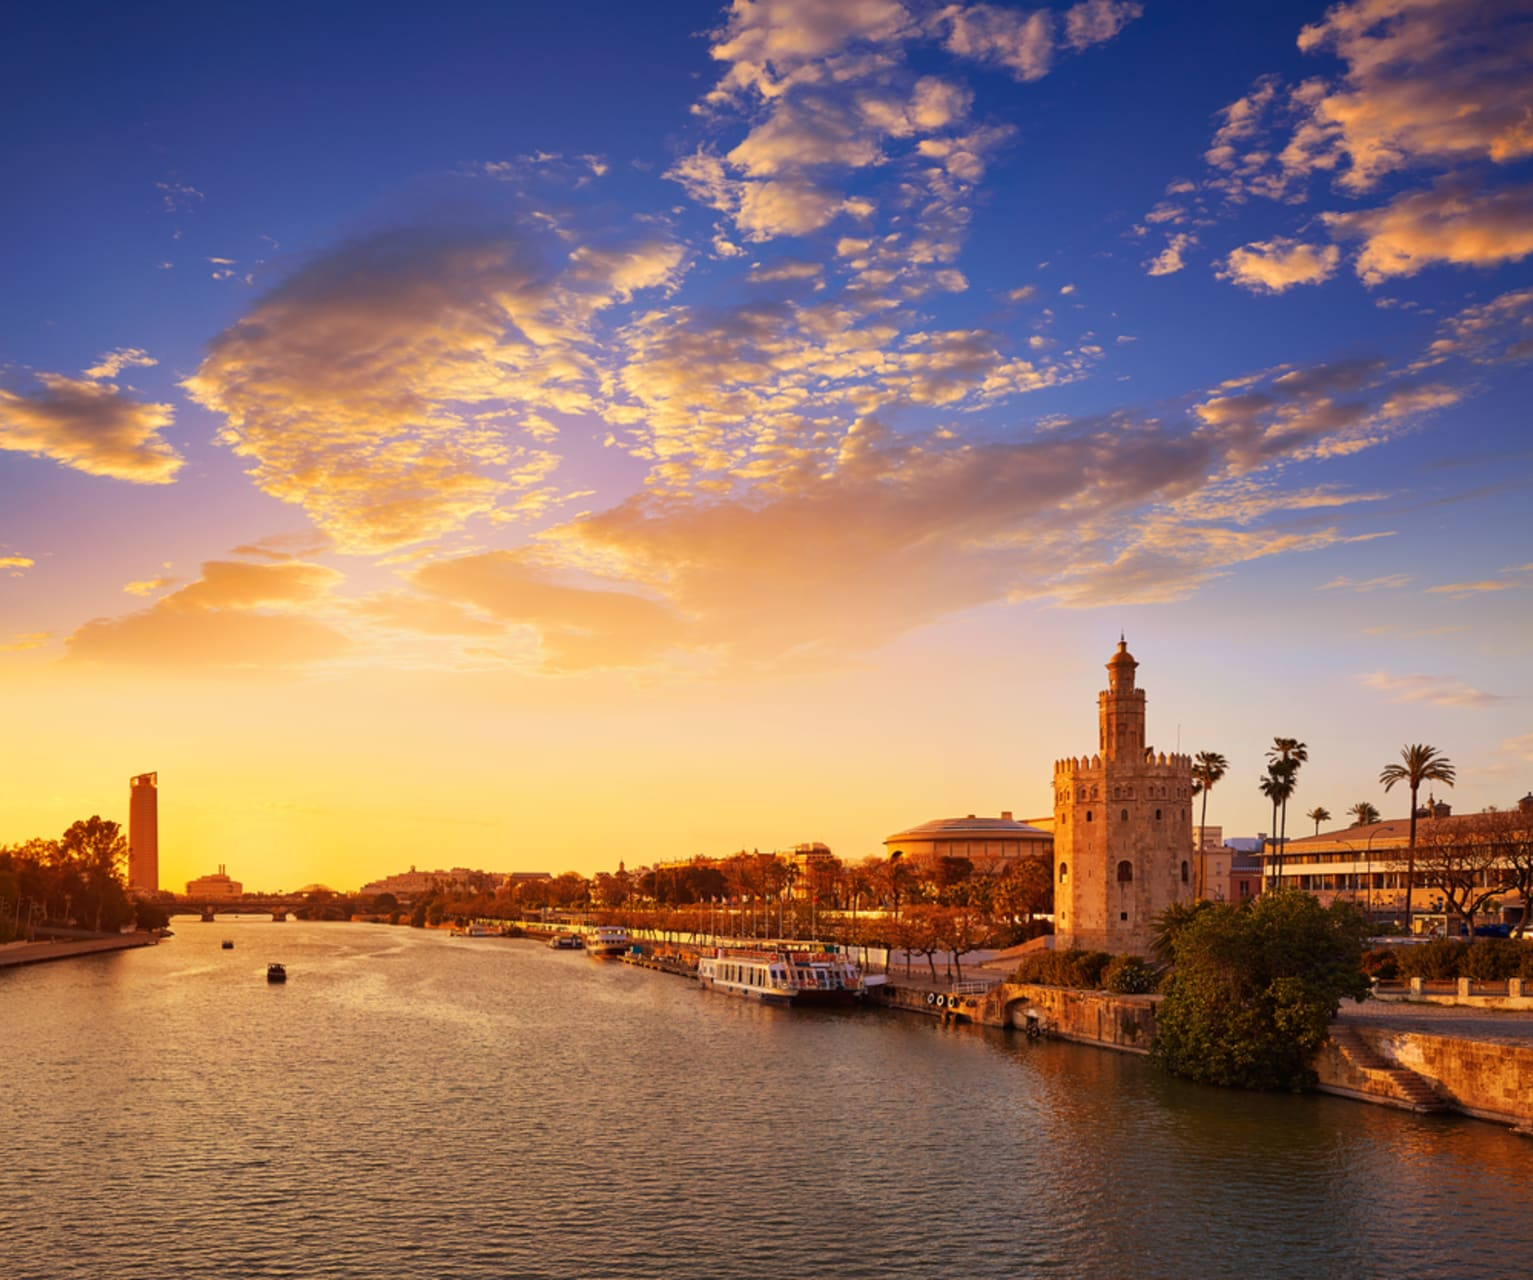 Seville - The Gate of the Americas:  From Seville to the World